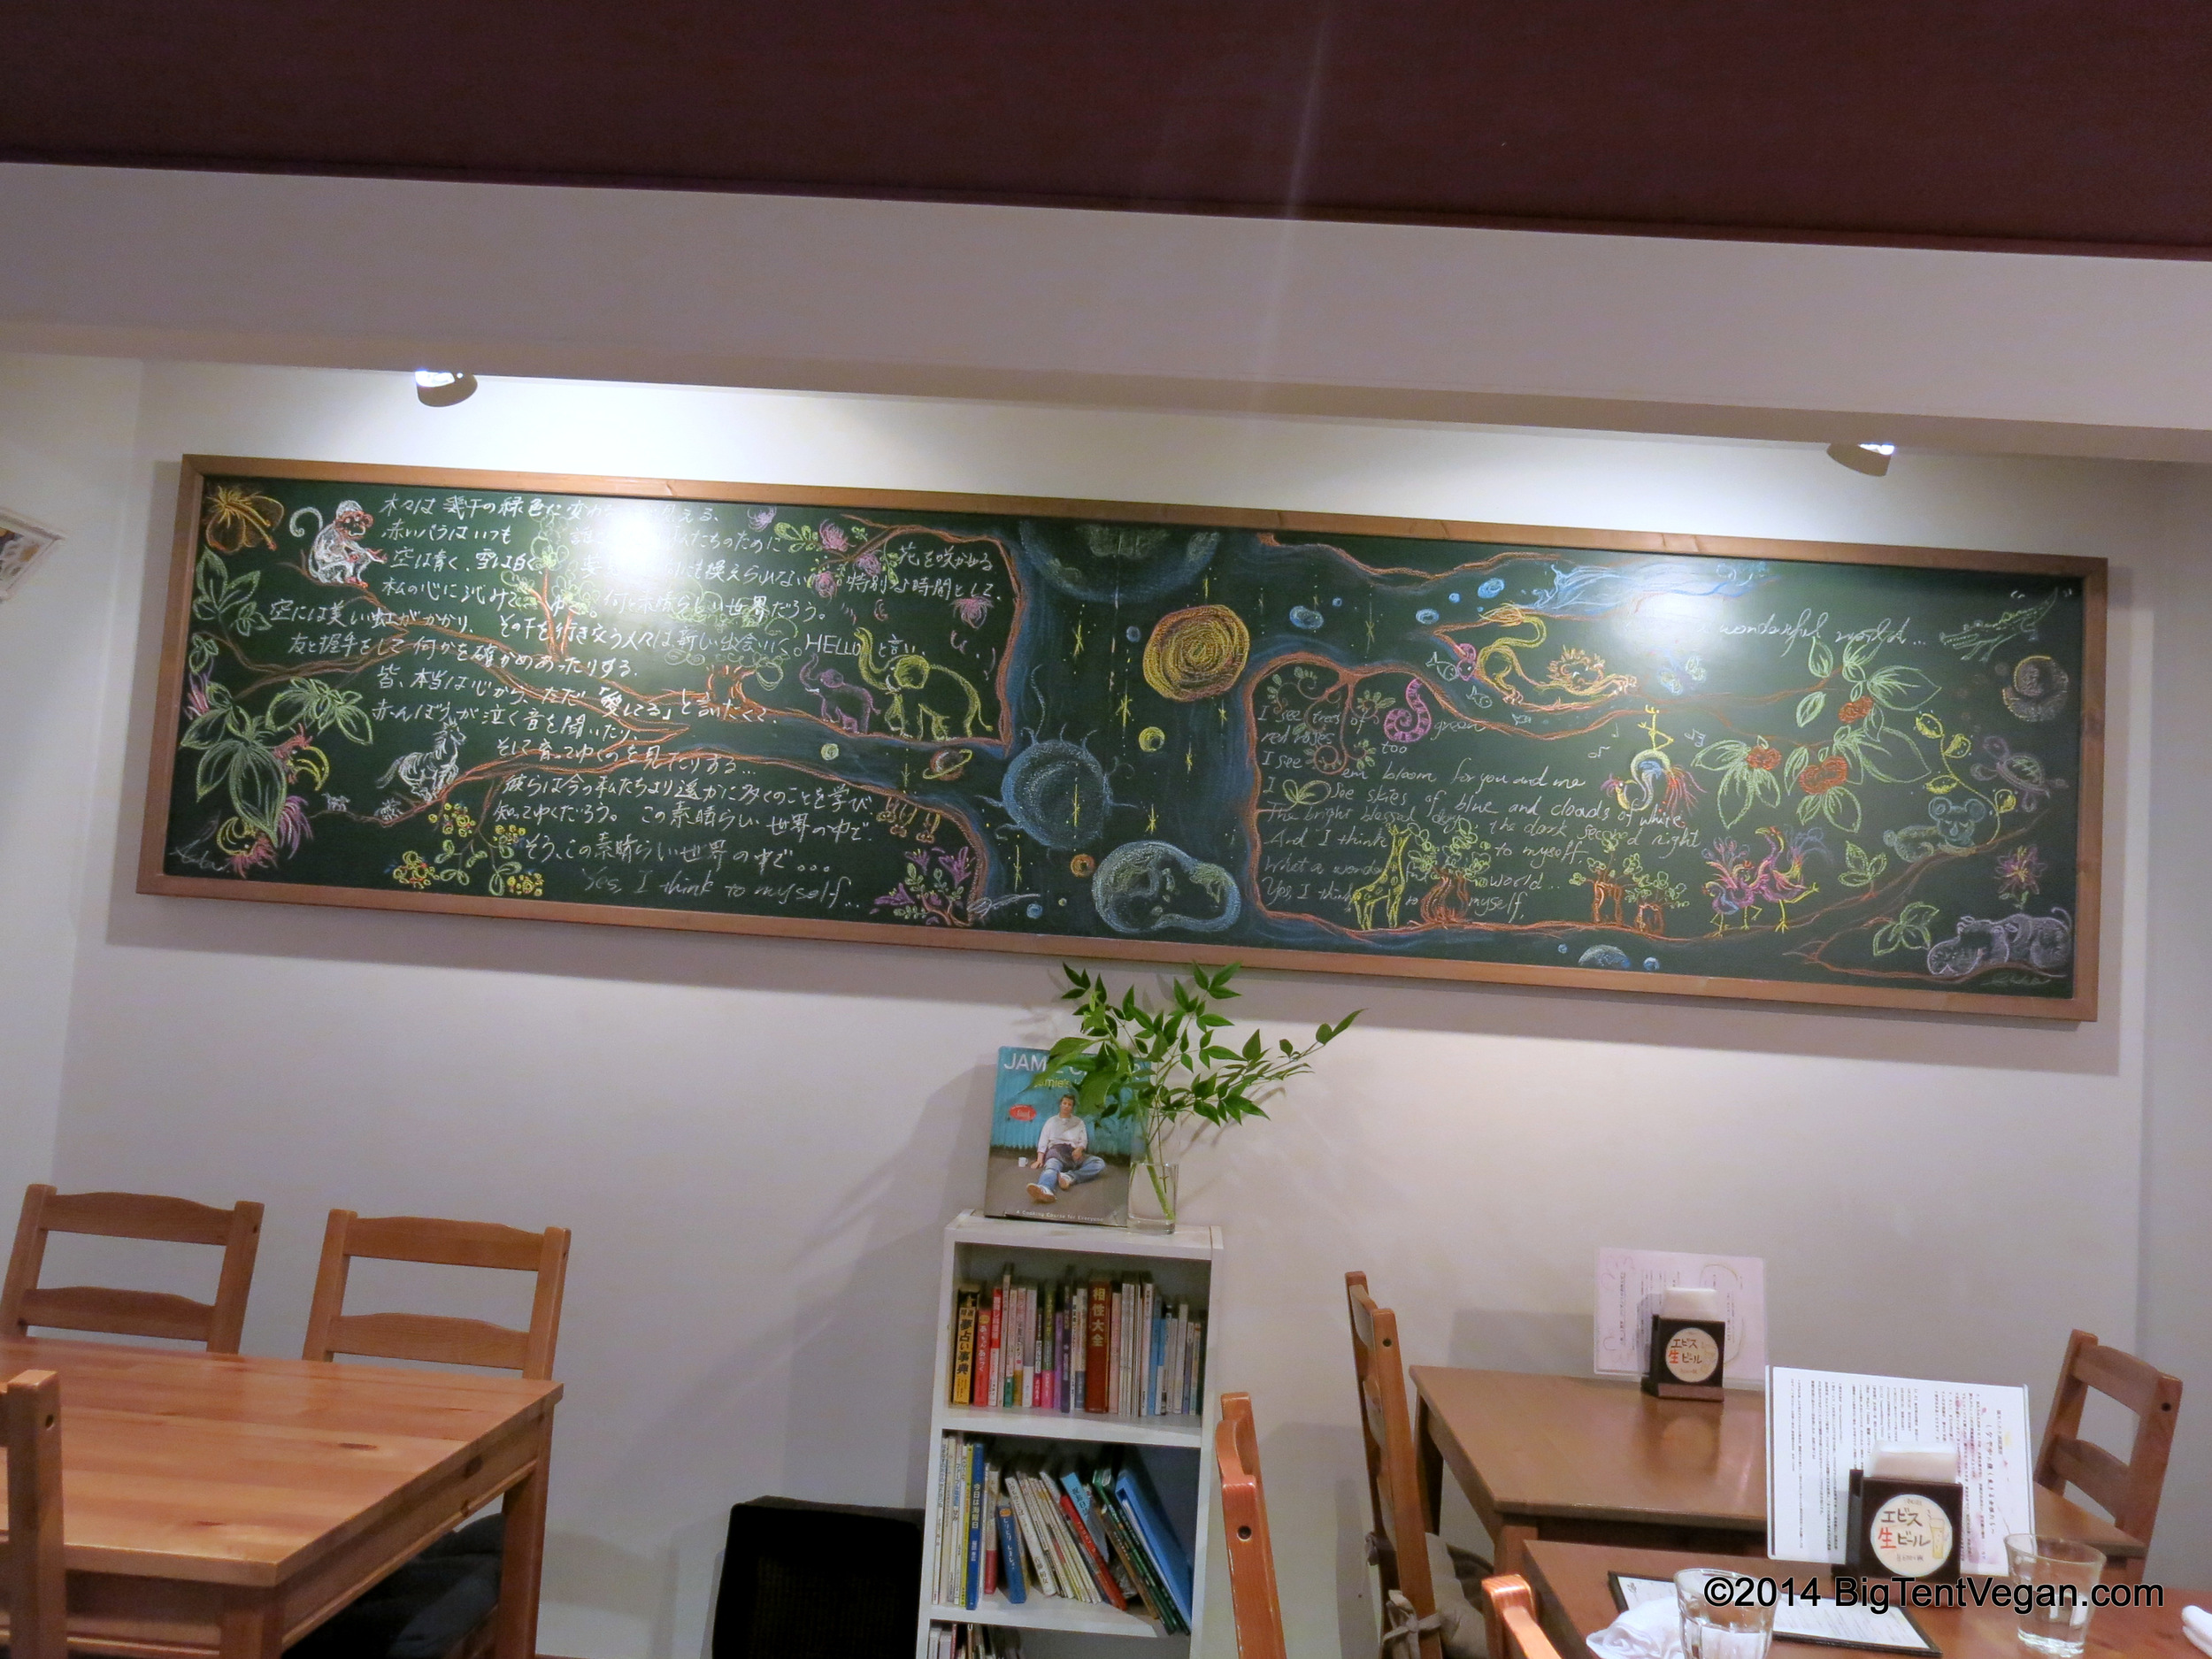 A cheerful chalk mural with drawings of a tree with lots of animals and plants brightens the dining area.